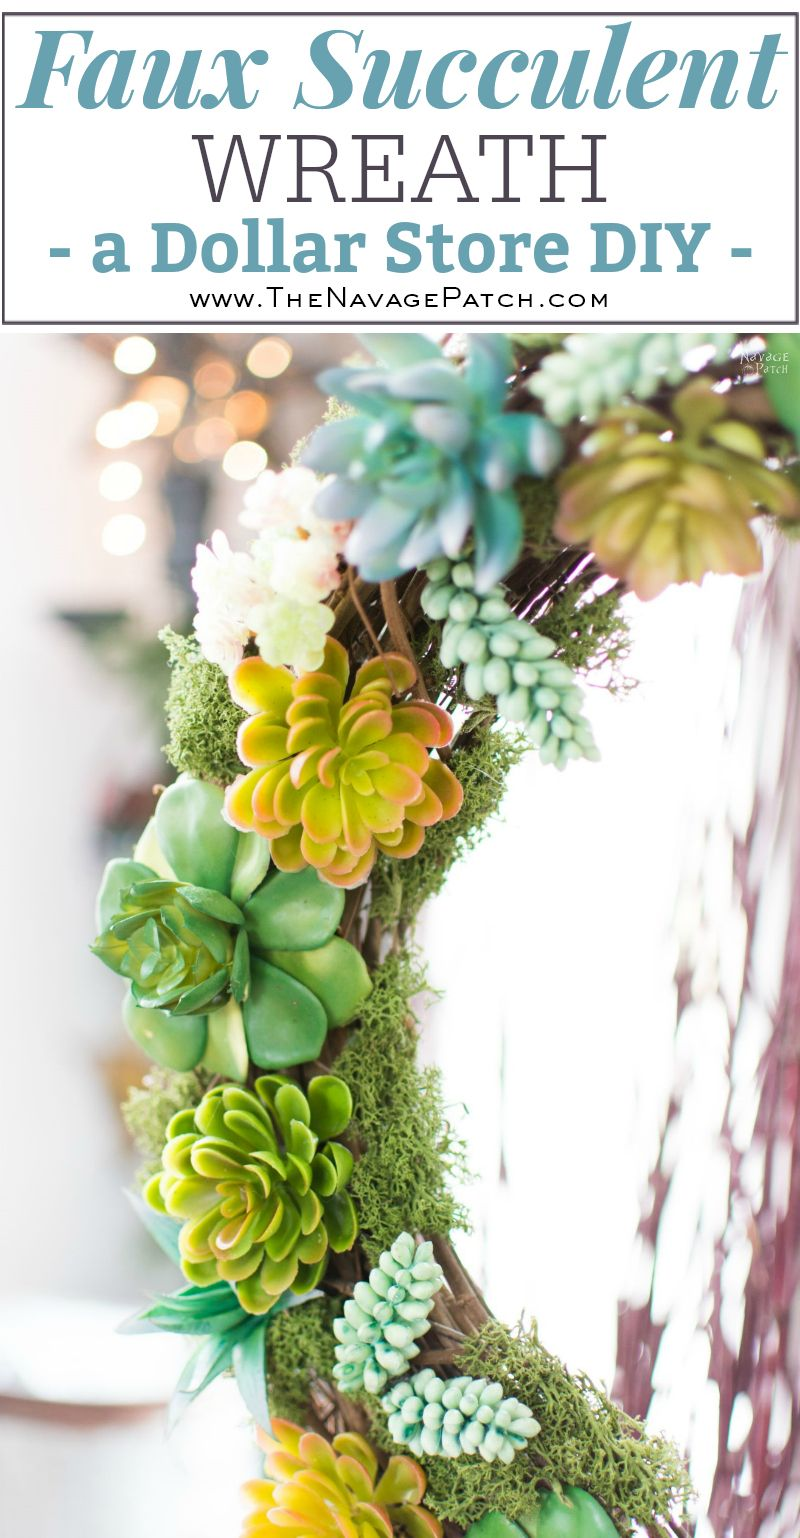 Faux Succulent Wreath A Dollar Store Diy The Navage Patch